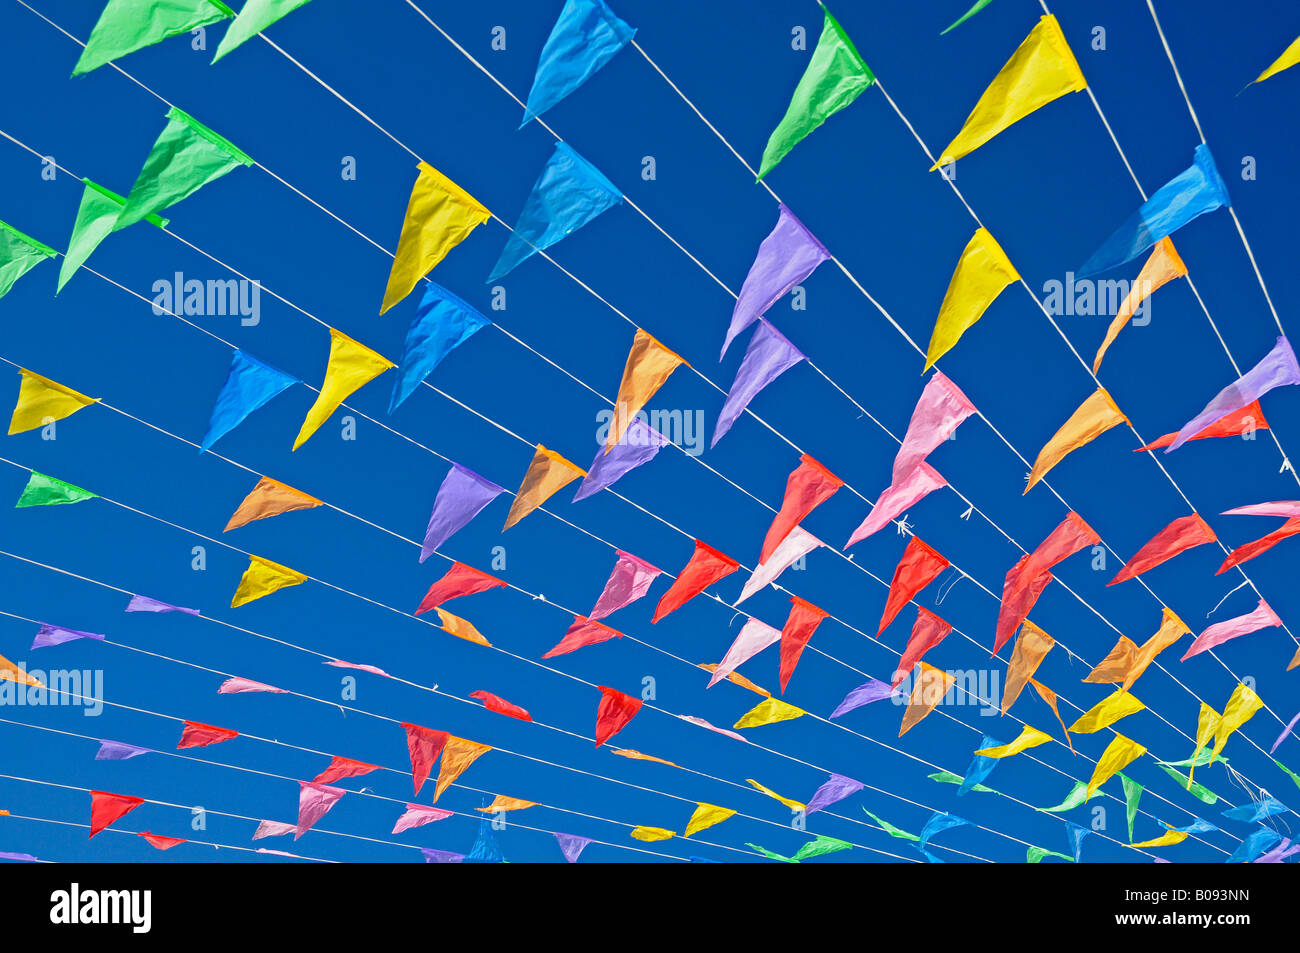 Colourful flags against a blue sky, fiesta, Altea la Vella, Alicante, Costa Blanca, Spain - Stock Image